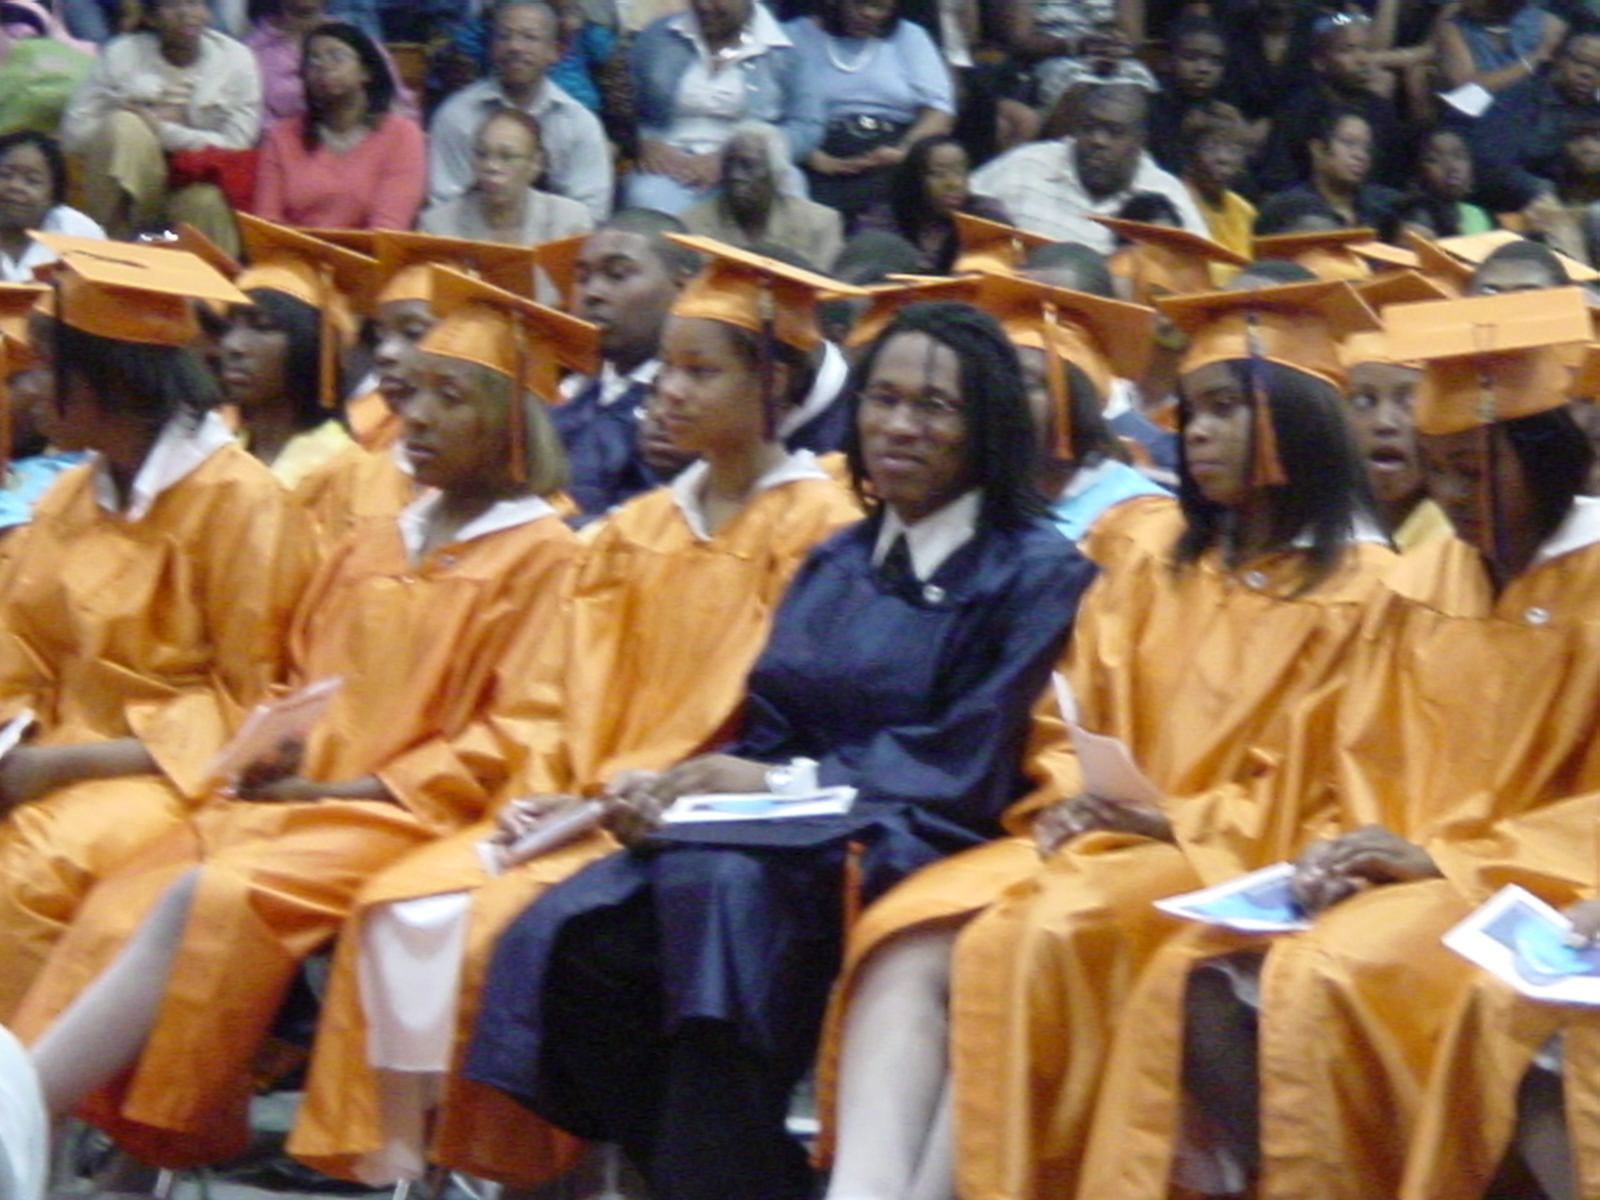 2008-Graduation of Rudy who was Student/Mentor/Staff